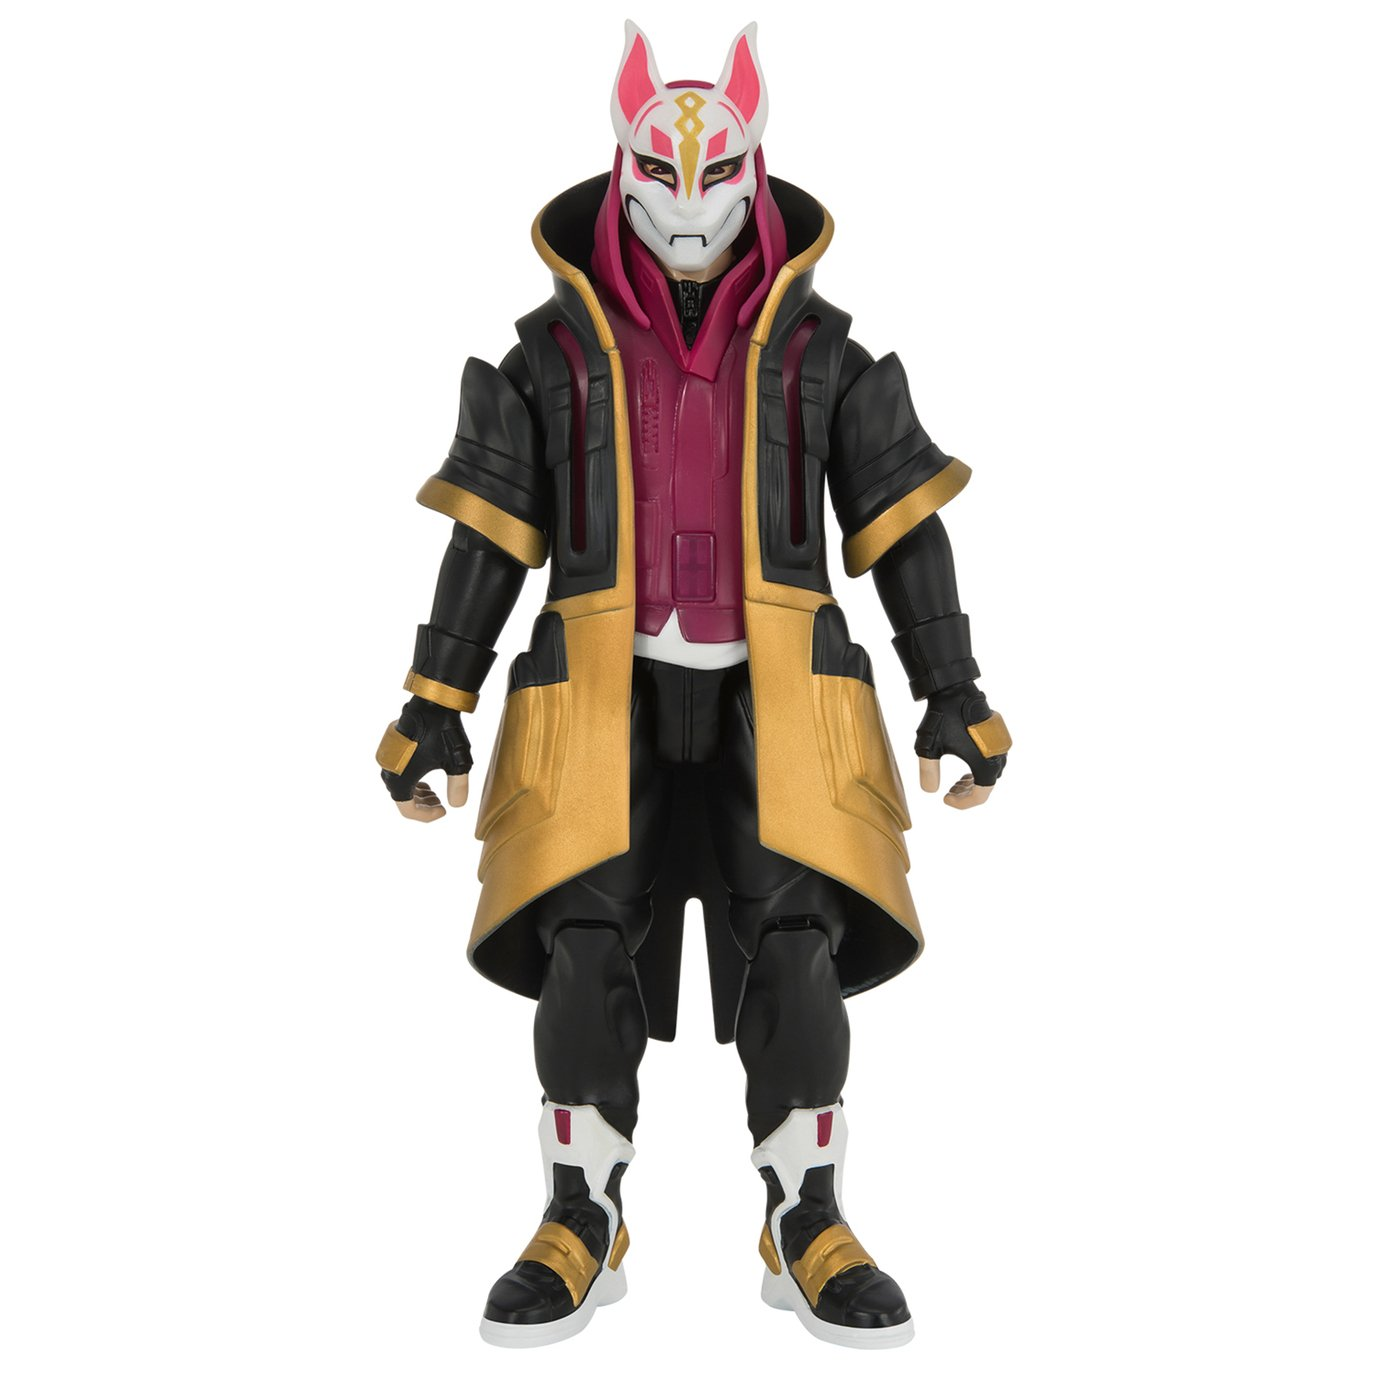 DRIFT 30cm Light up Action Figure with 20 Sounds NEW FORTNITE VICTORY SERIES